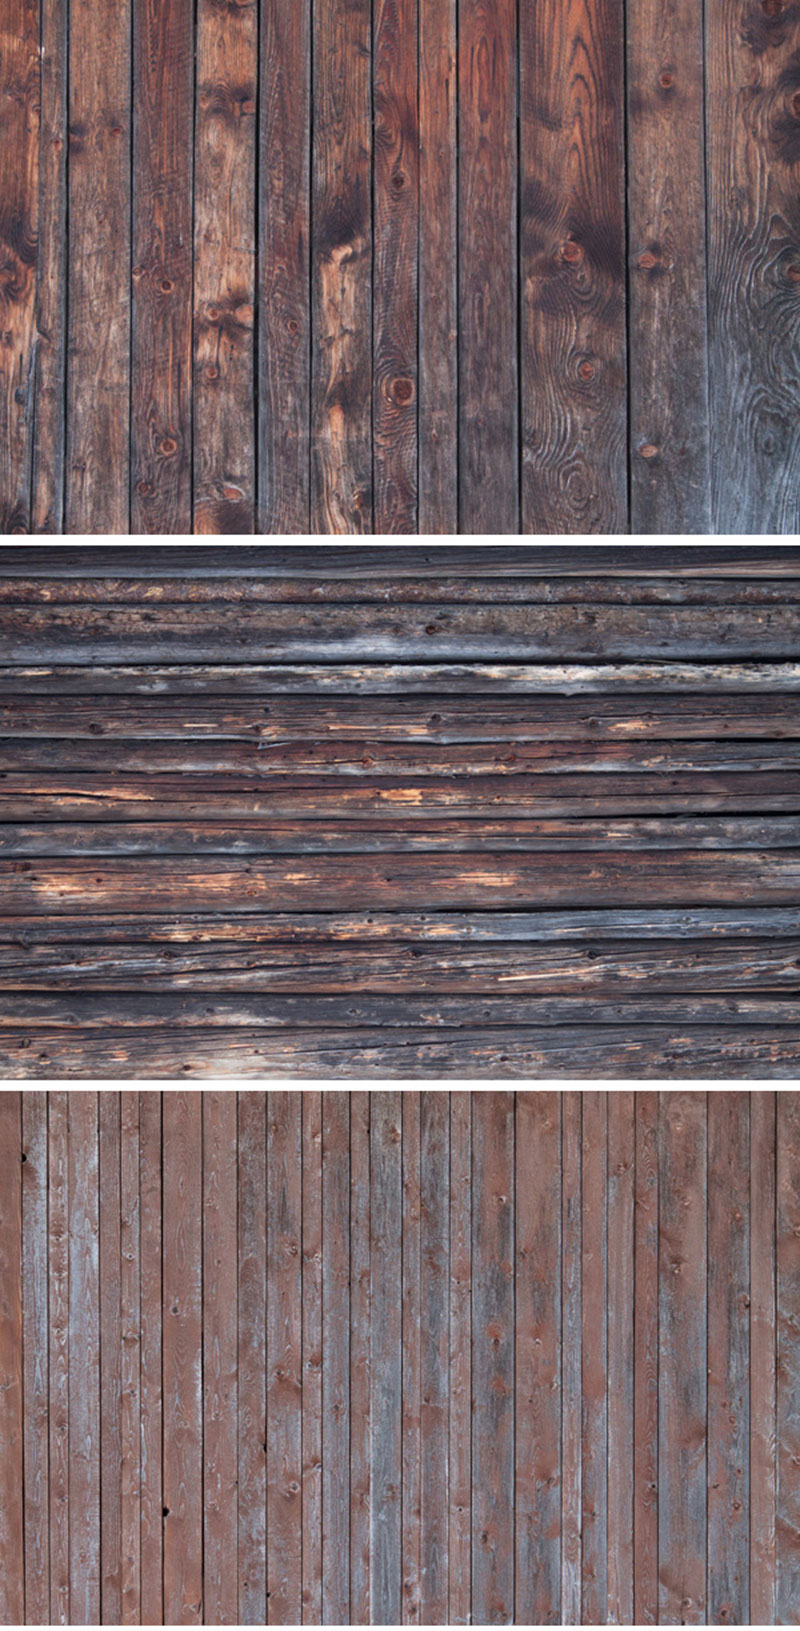 6-Vintage-Wood-Textures-Vol.4-Weathered-wood1 Free wooden background images and textures for design projects